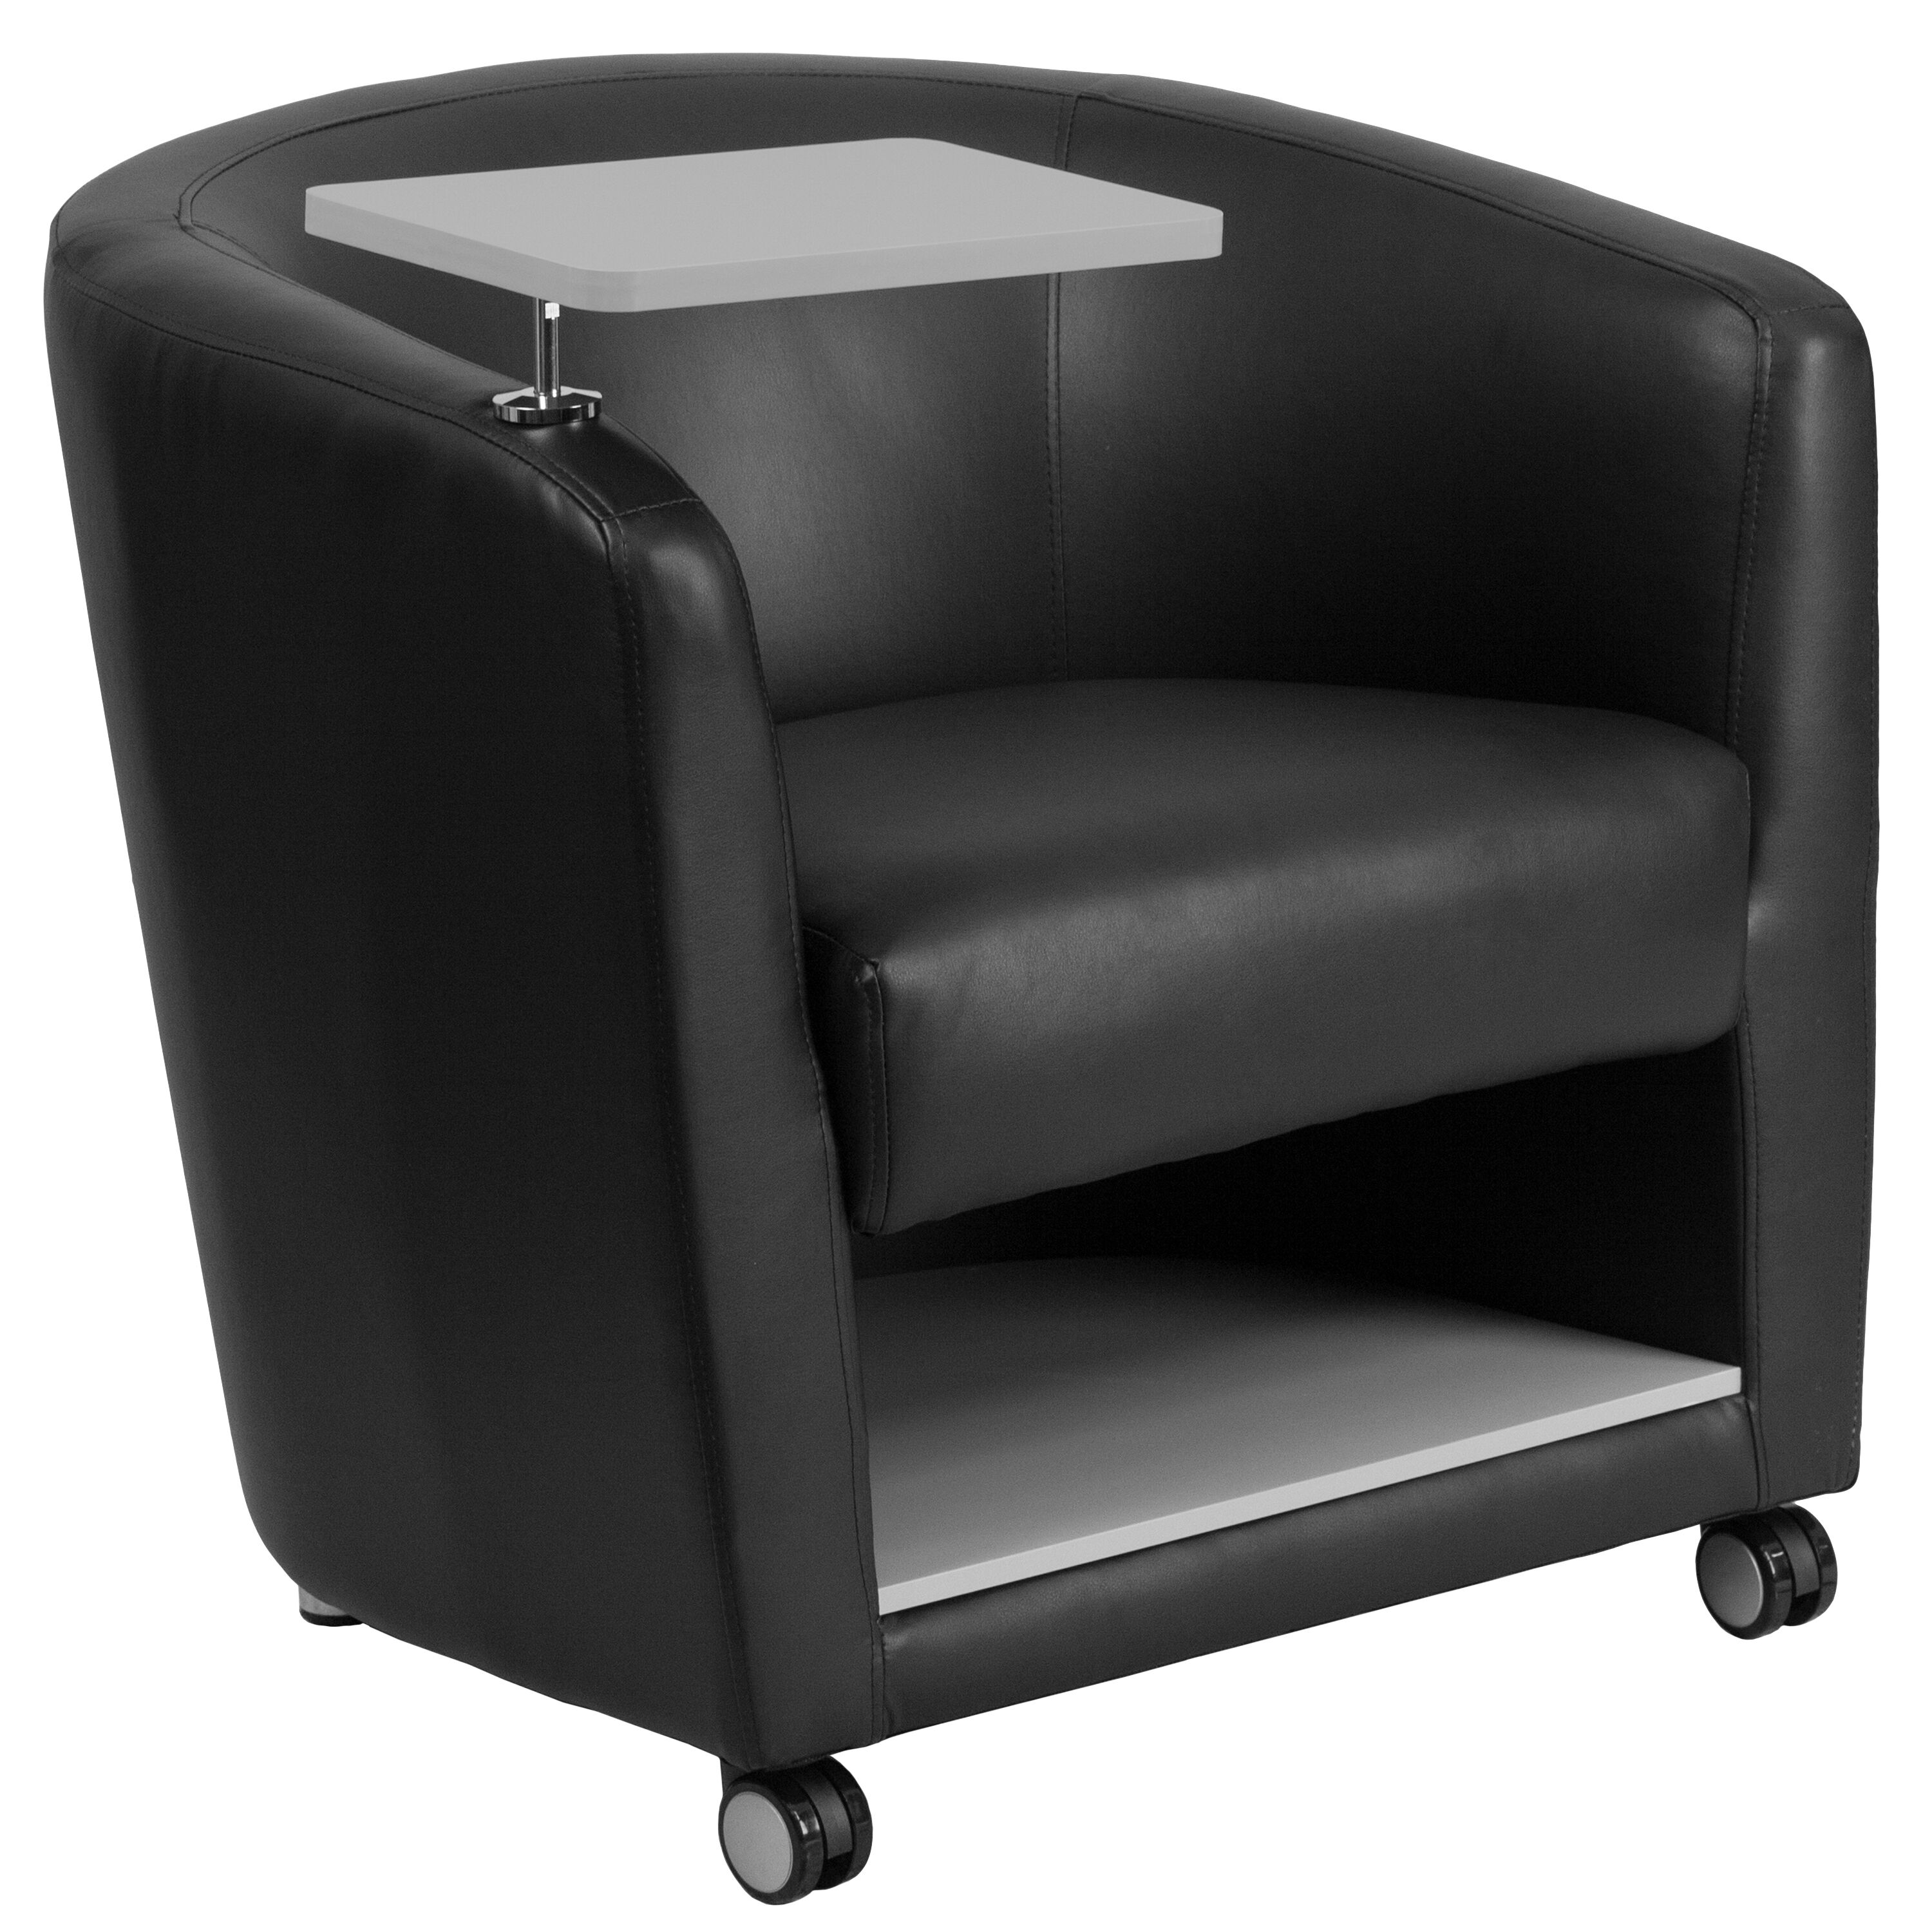 stool under chair bedroom relaxing flash furniture black leather guest with tablet arm